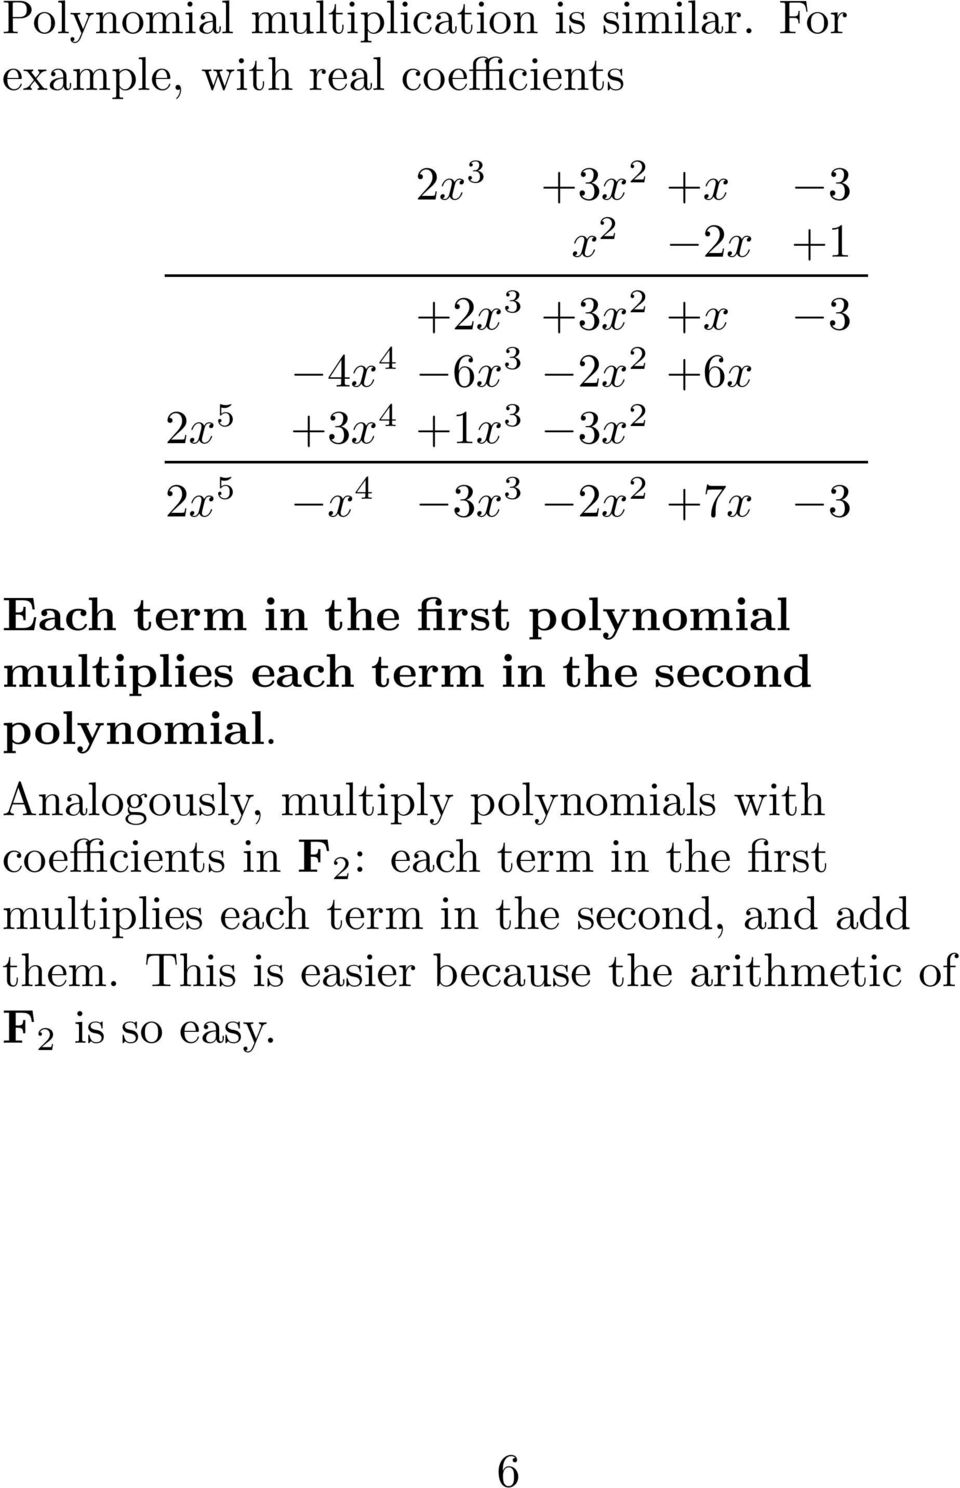 3 3x 2 2x 5 x 4 3x 3 2x 2 +7x 3 Each term in the first polynomial multiplies each term in the second polynomial.